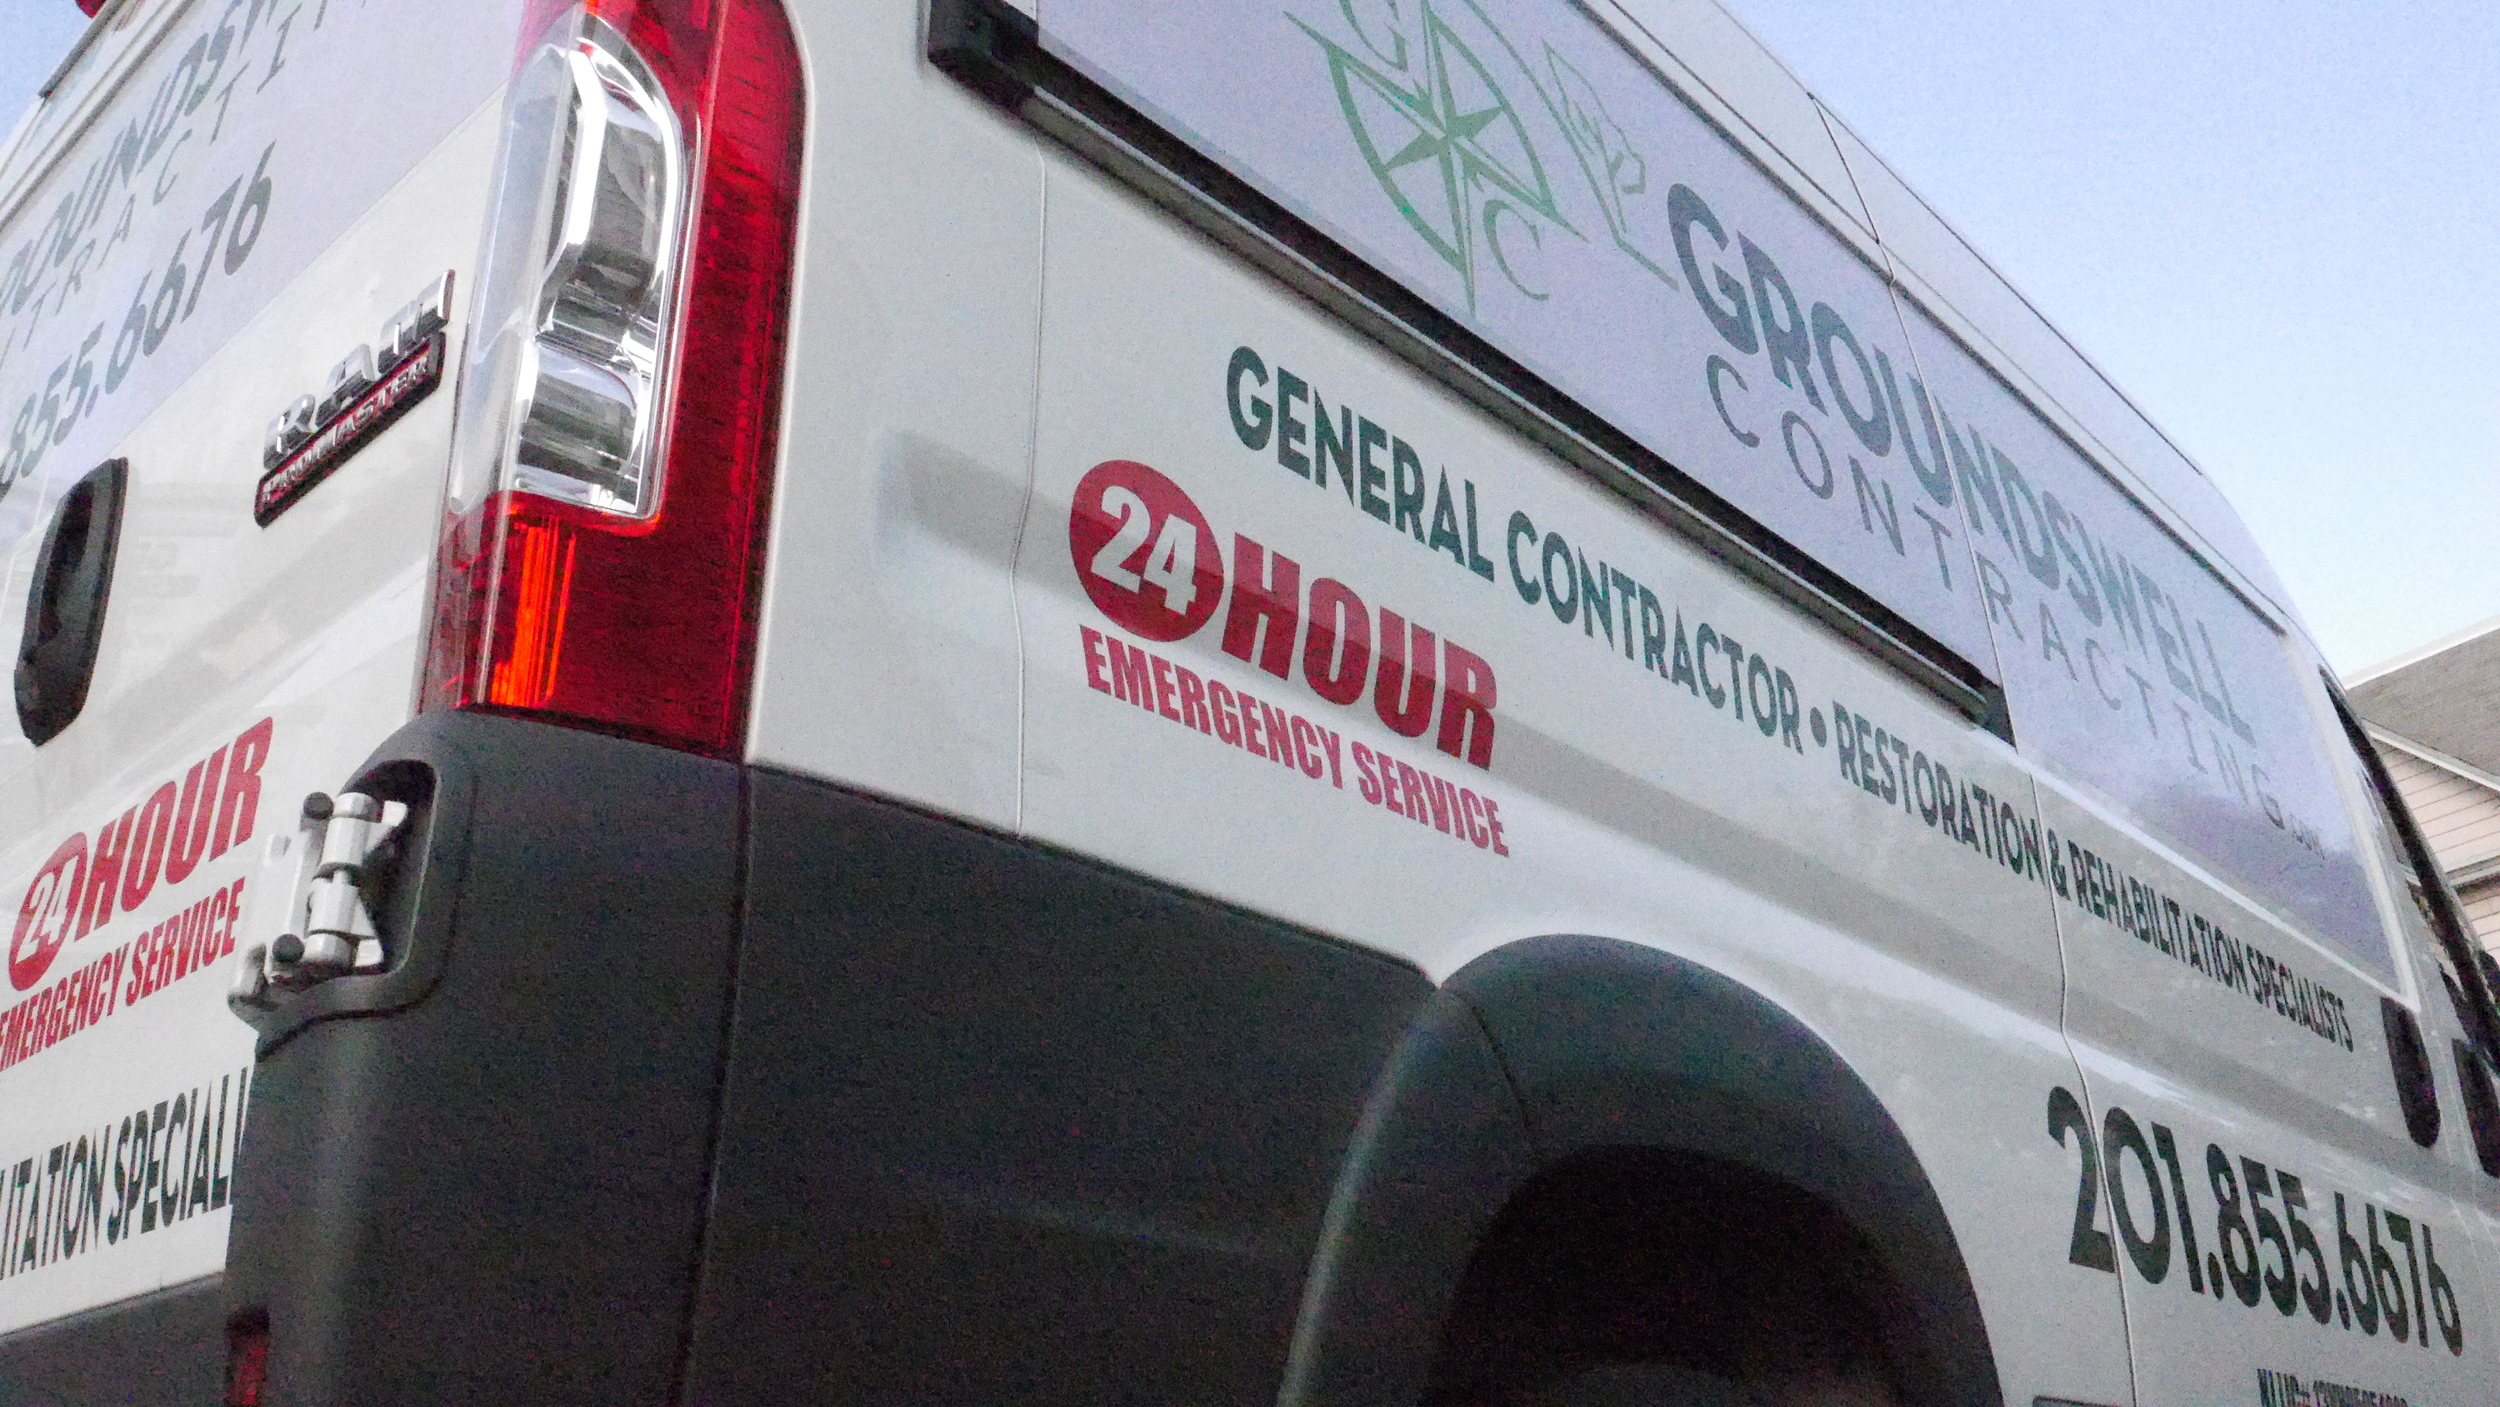 24-hour Emergency Service provided by Groundswell Contracting